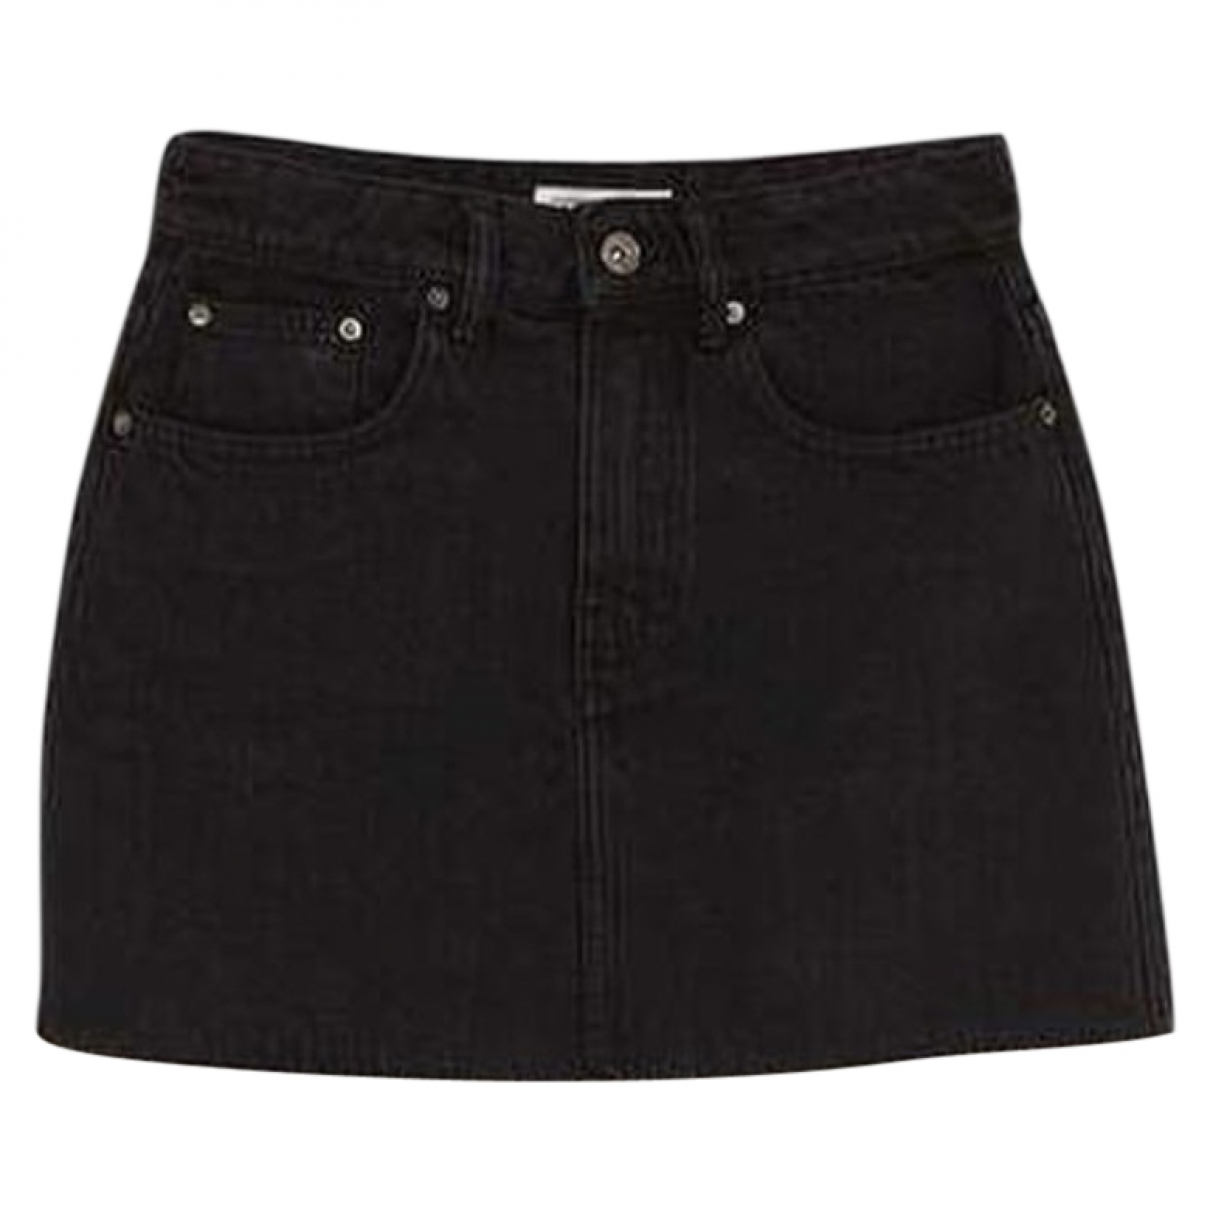 Zara \N Black Denim - Jeans skirt for Women S International